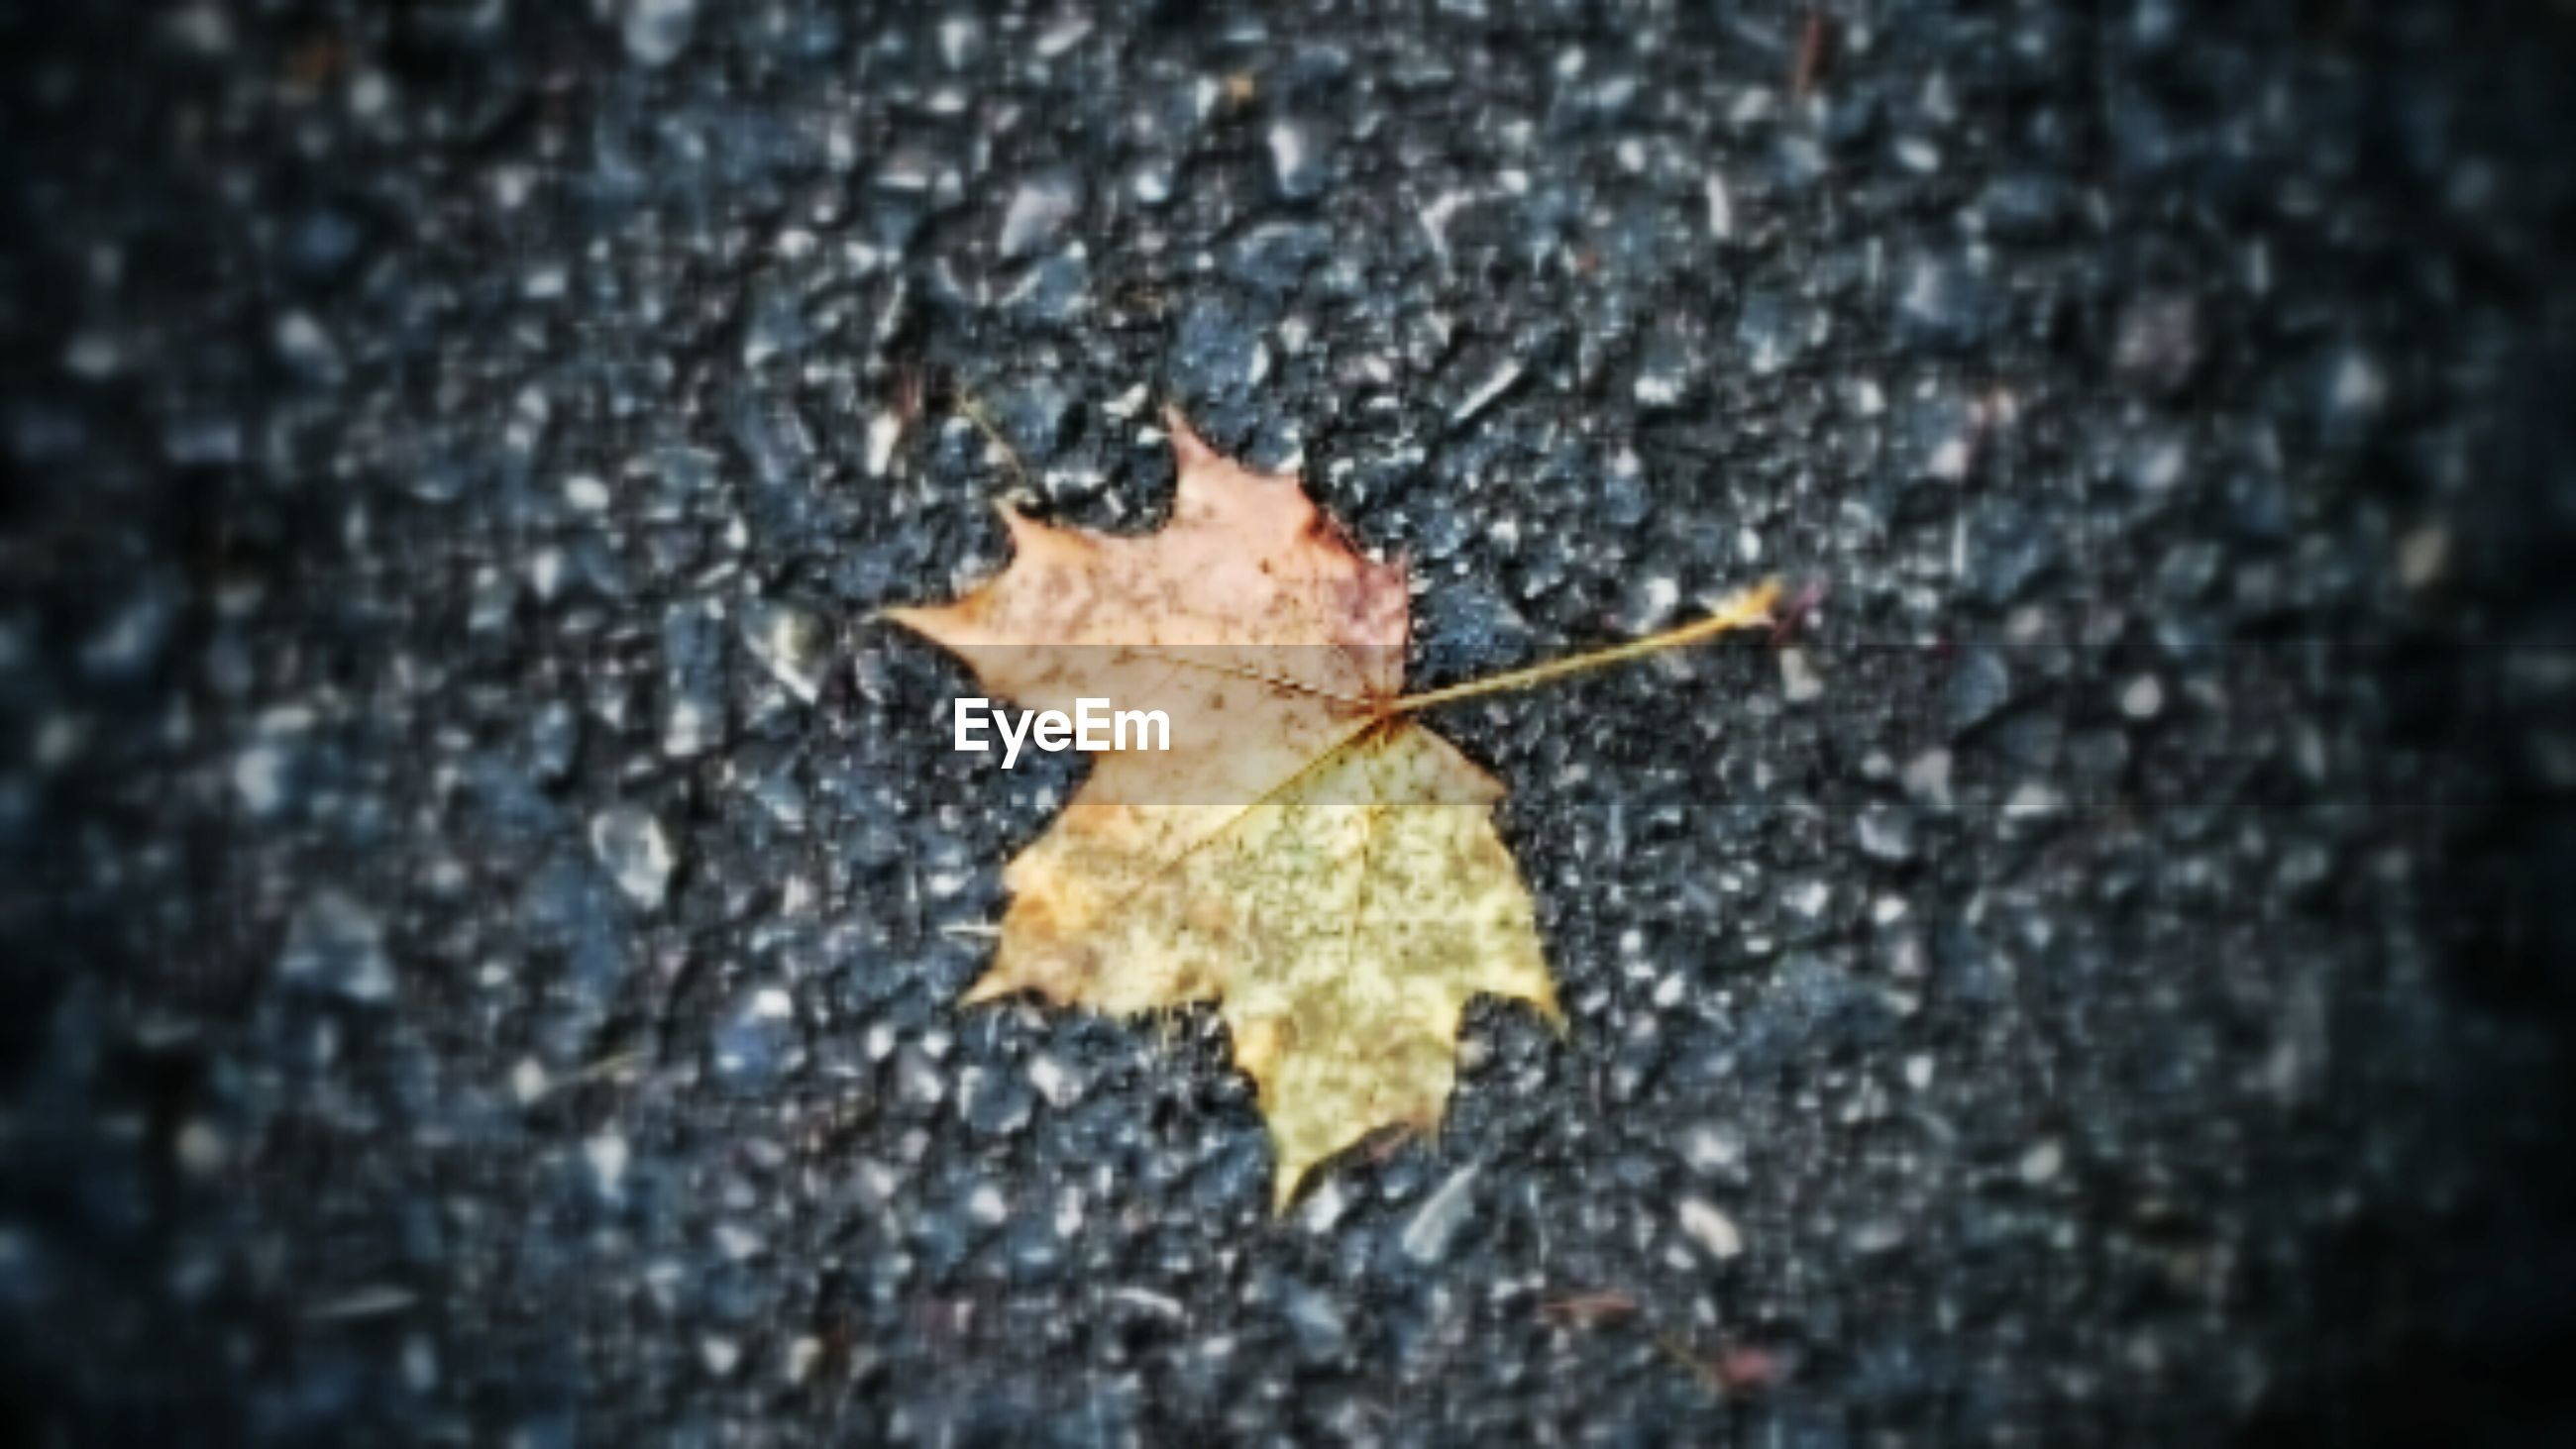 leaf, autumn, dry, change, close-up, textured, leaf vein, fallen, maple leaf, leaves, selective focus, natural pattern, nature, season, natural condition, ground, fragility, outdoors, aging process, rough